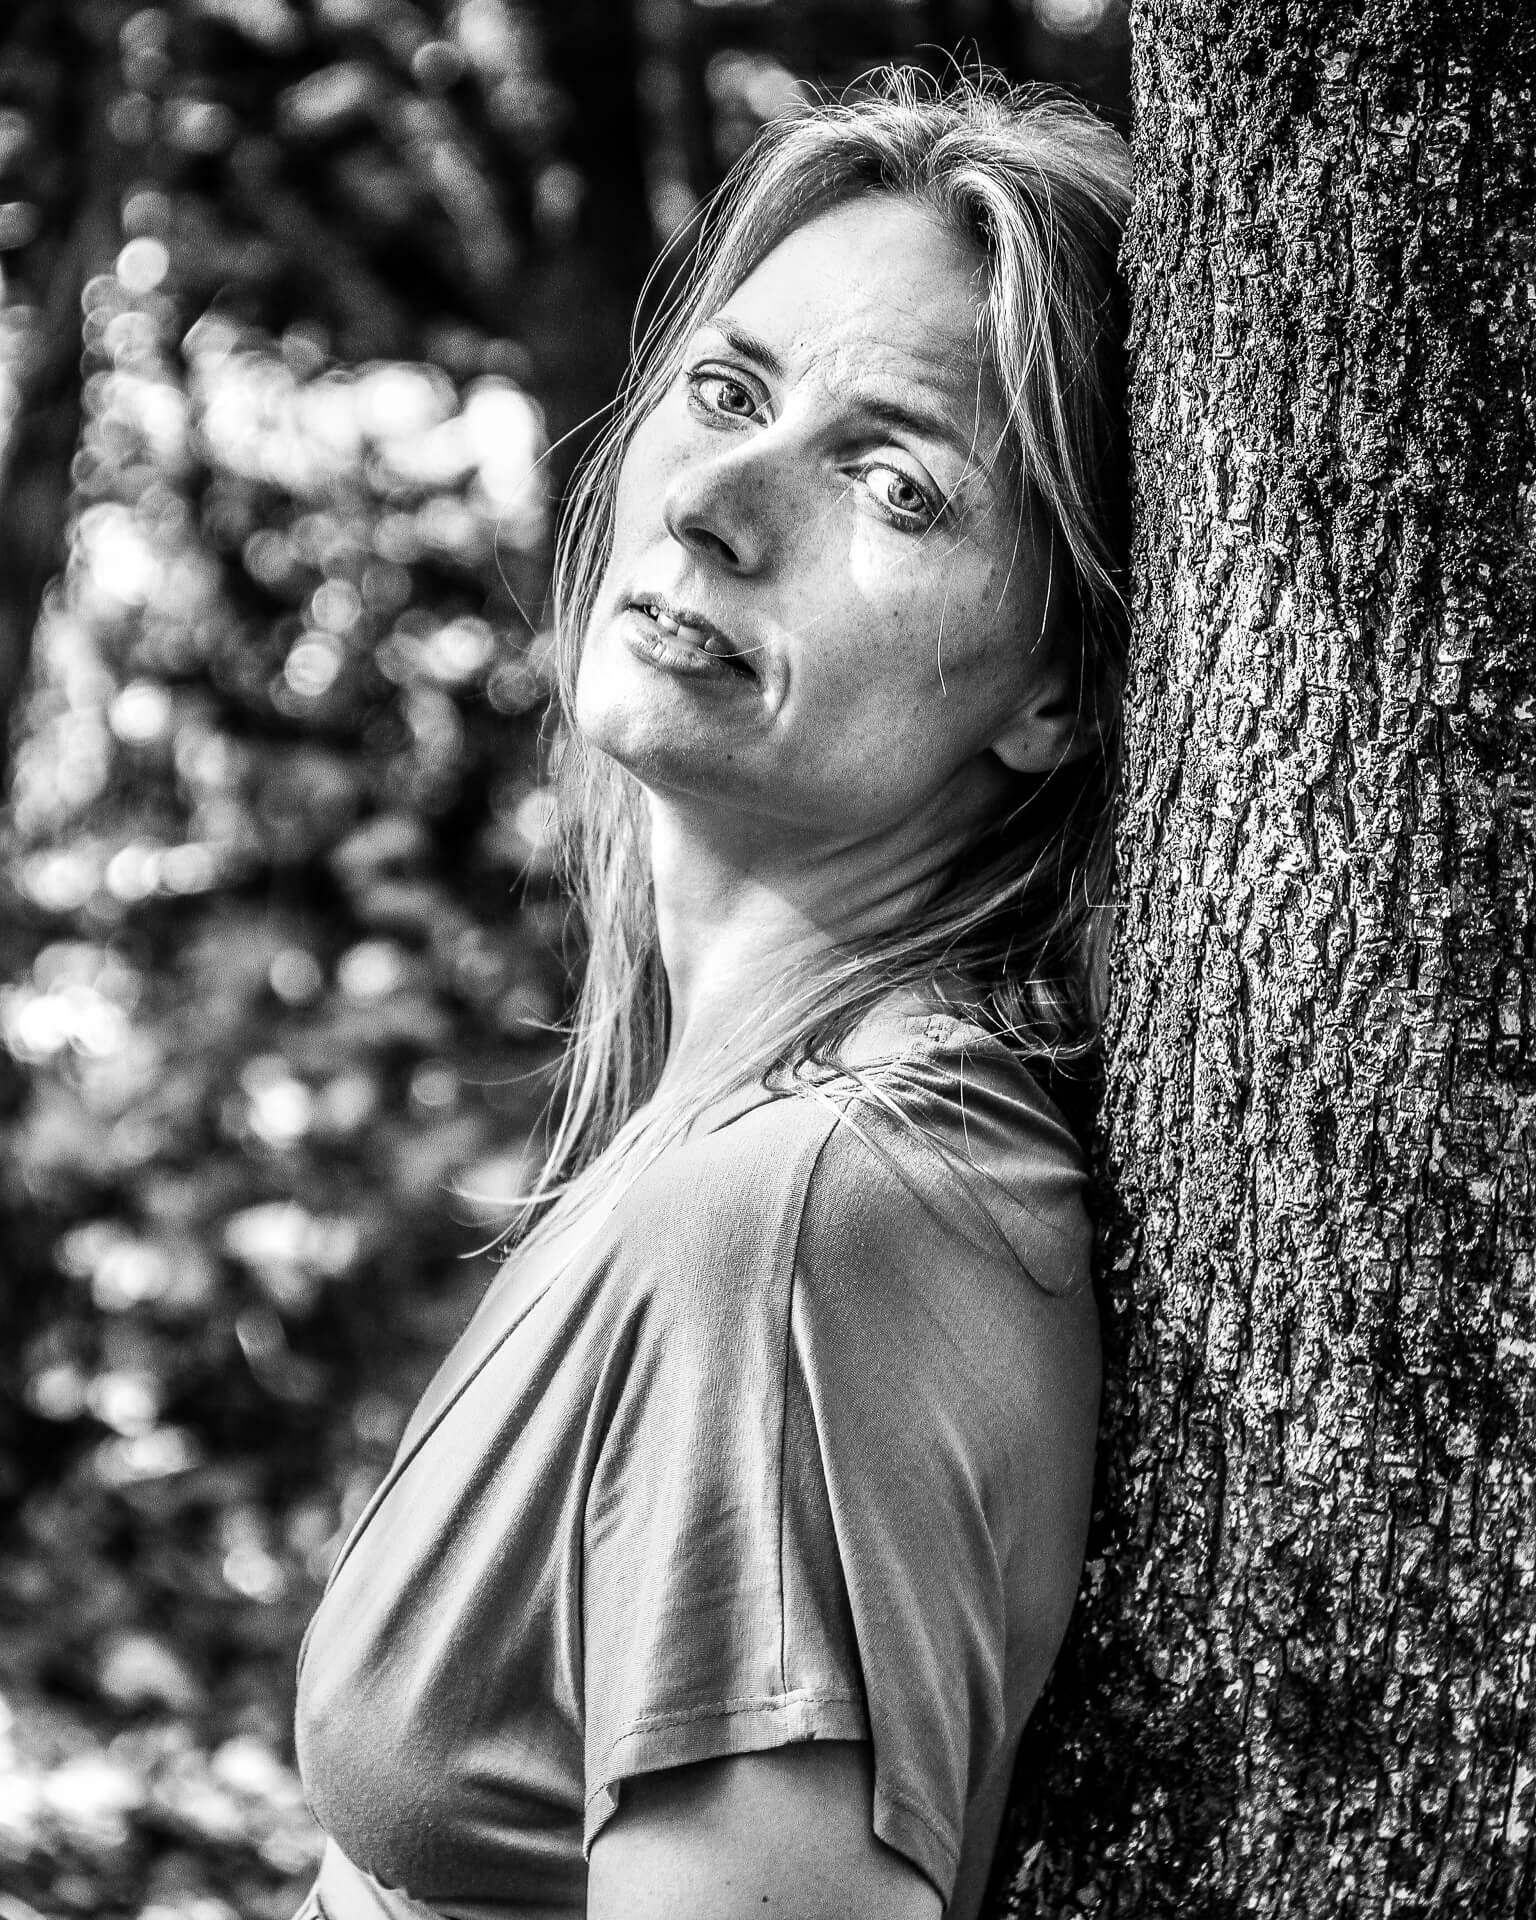 A B&W head & shoulders image of Liz leaning against a tree, taken in Fleix 86, France 2011